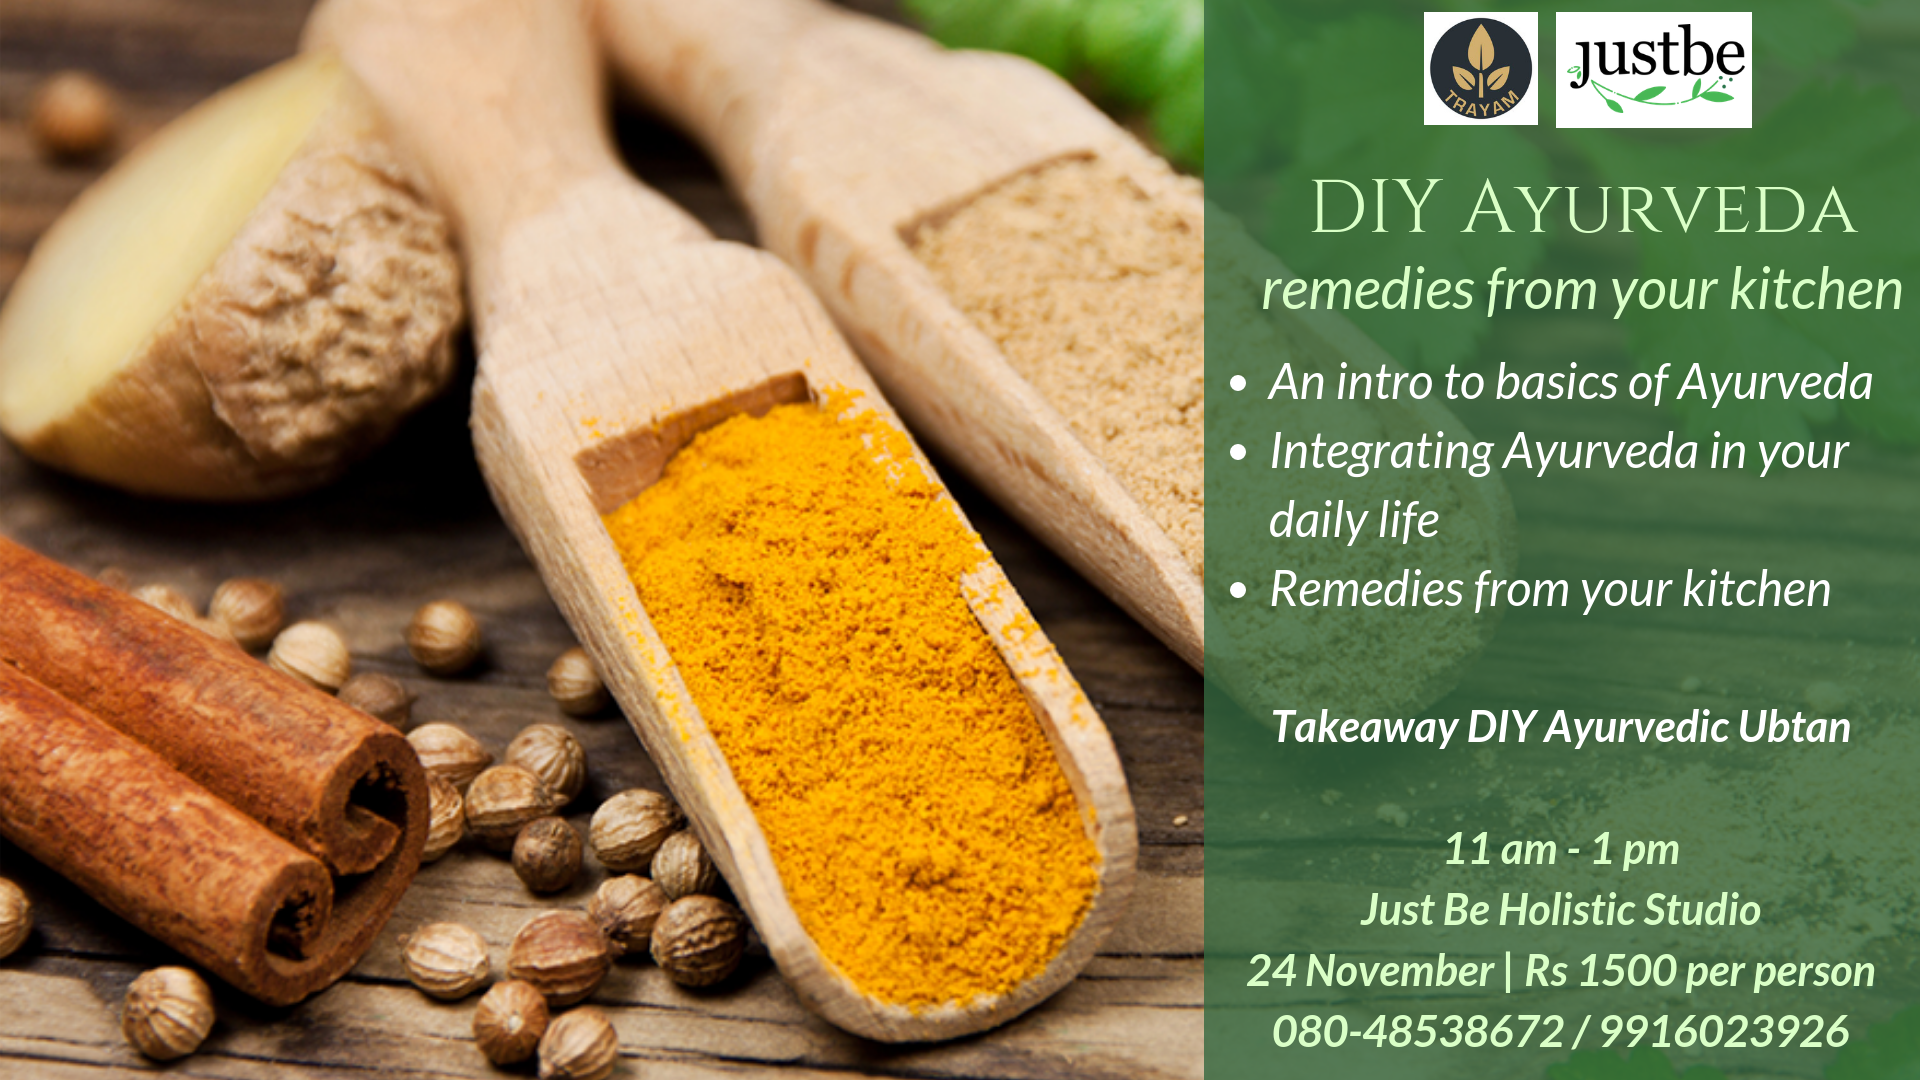 DIY Ayurveda - remedies from your kitchen